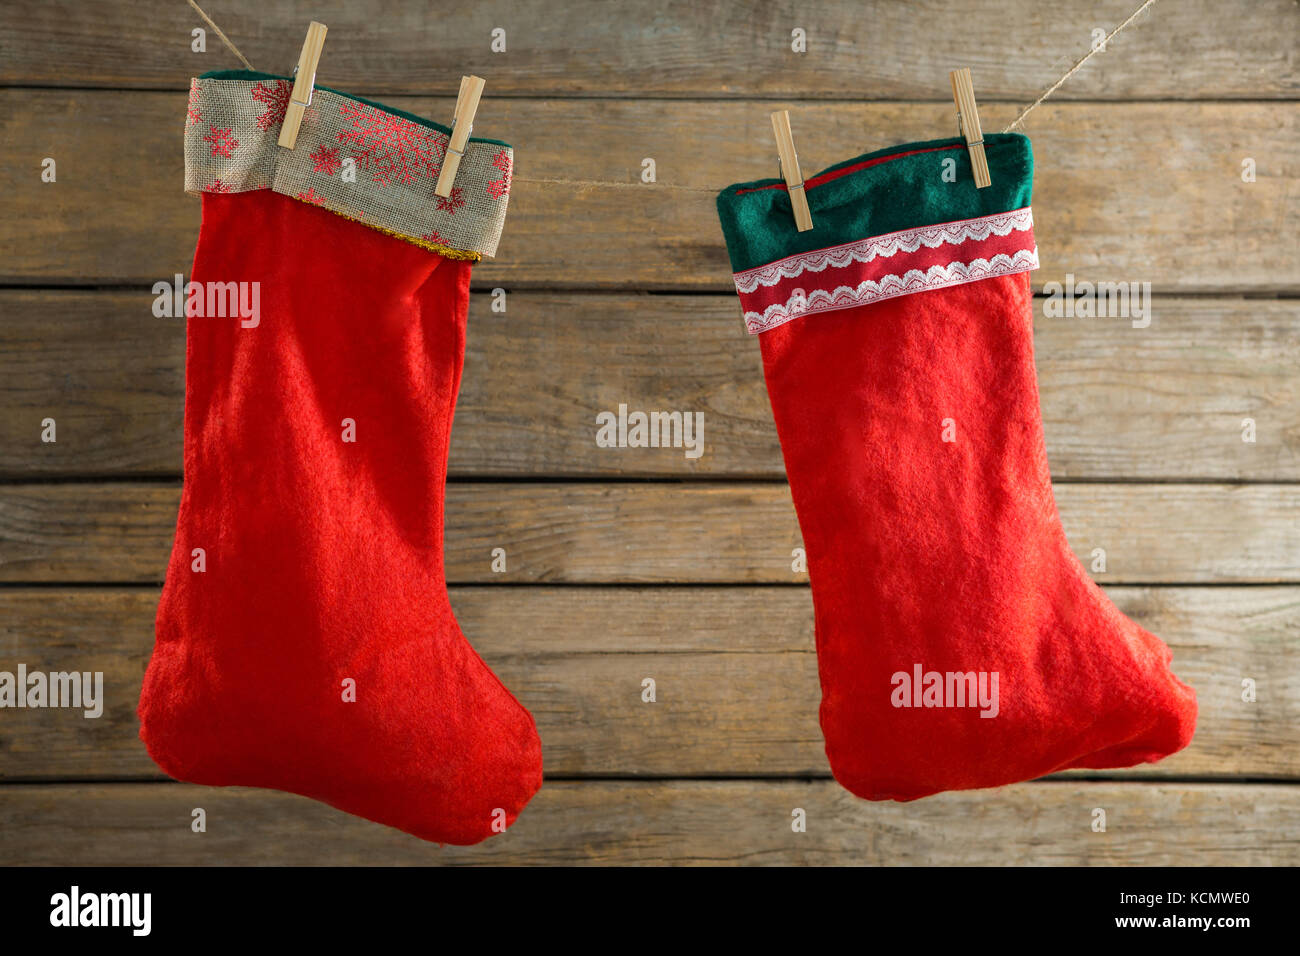 close up of stockings hanging on rope against wooden wall stock image